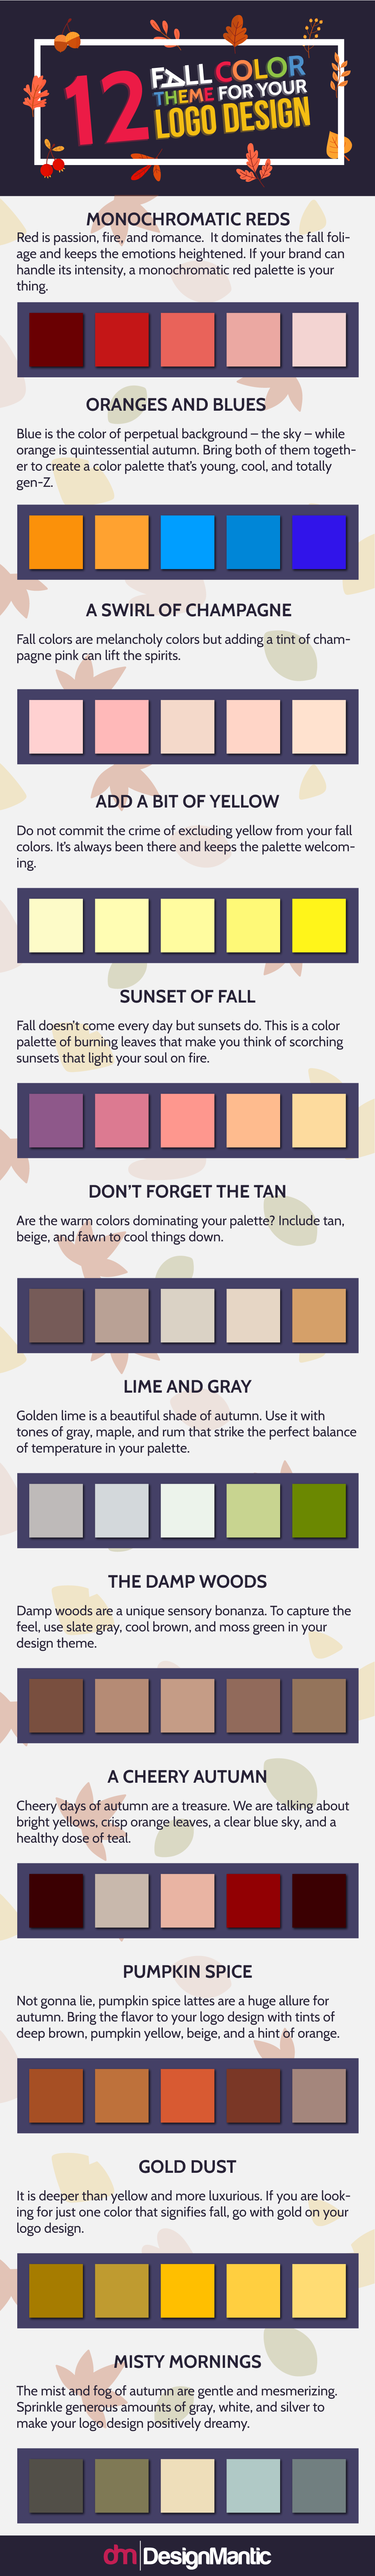 Color Themes for Your Logo Design